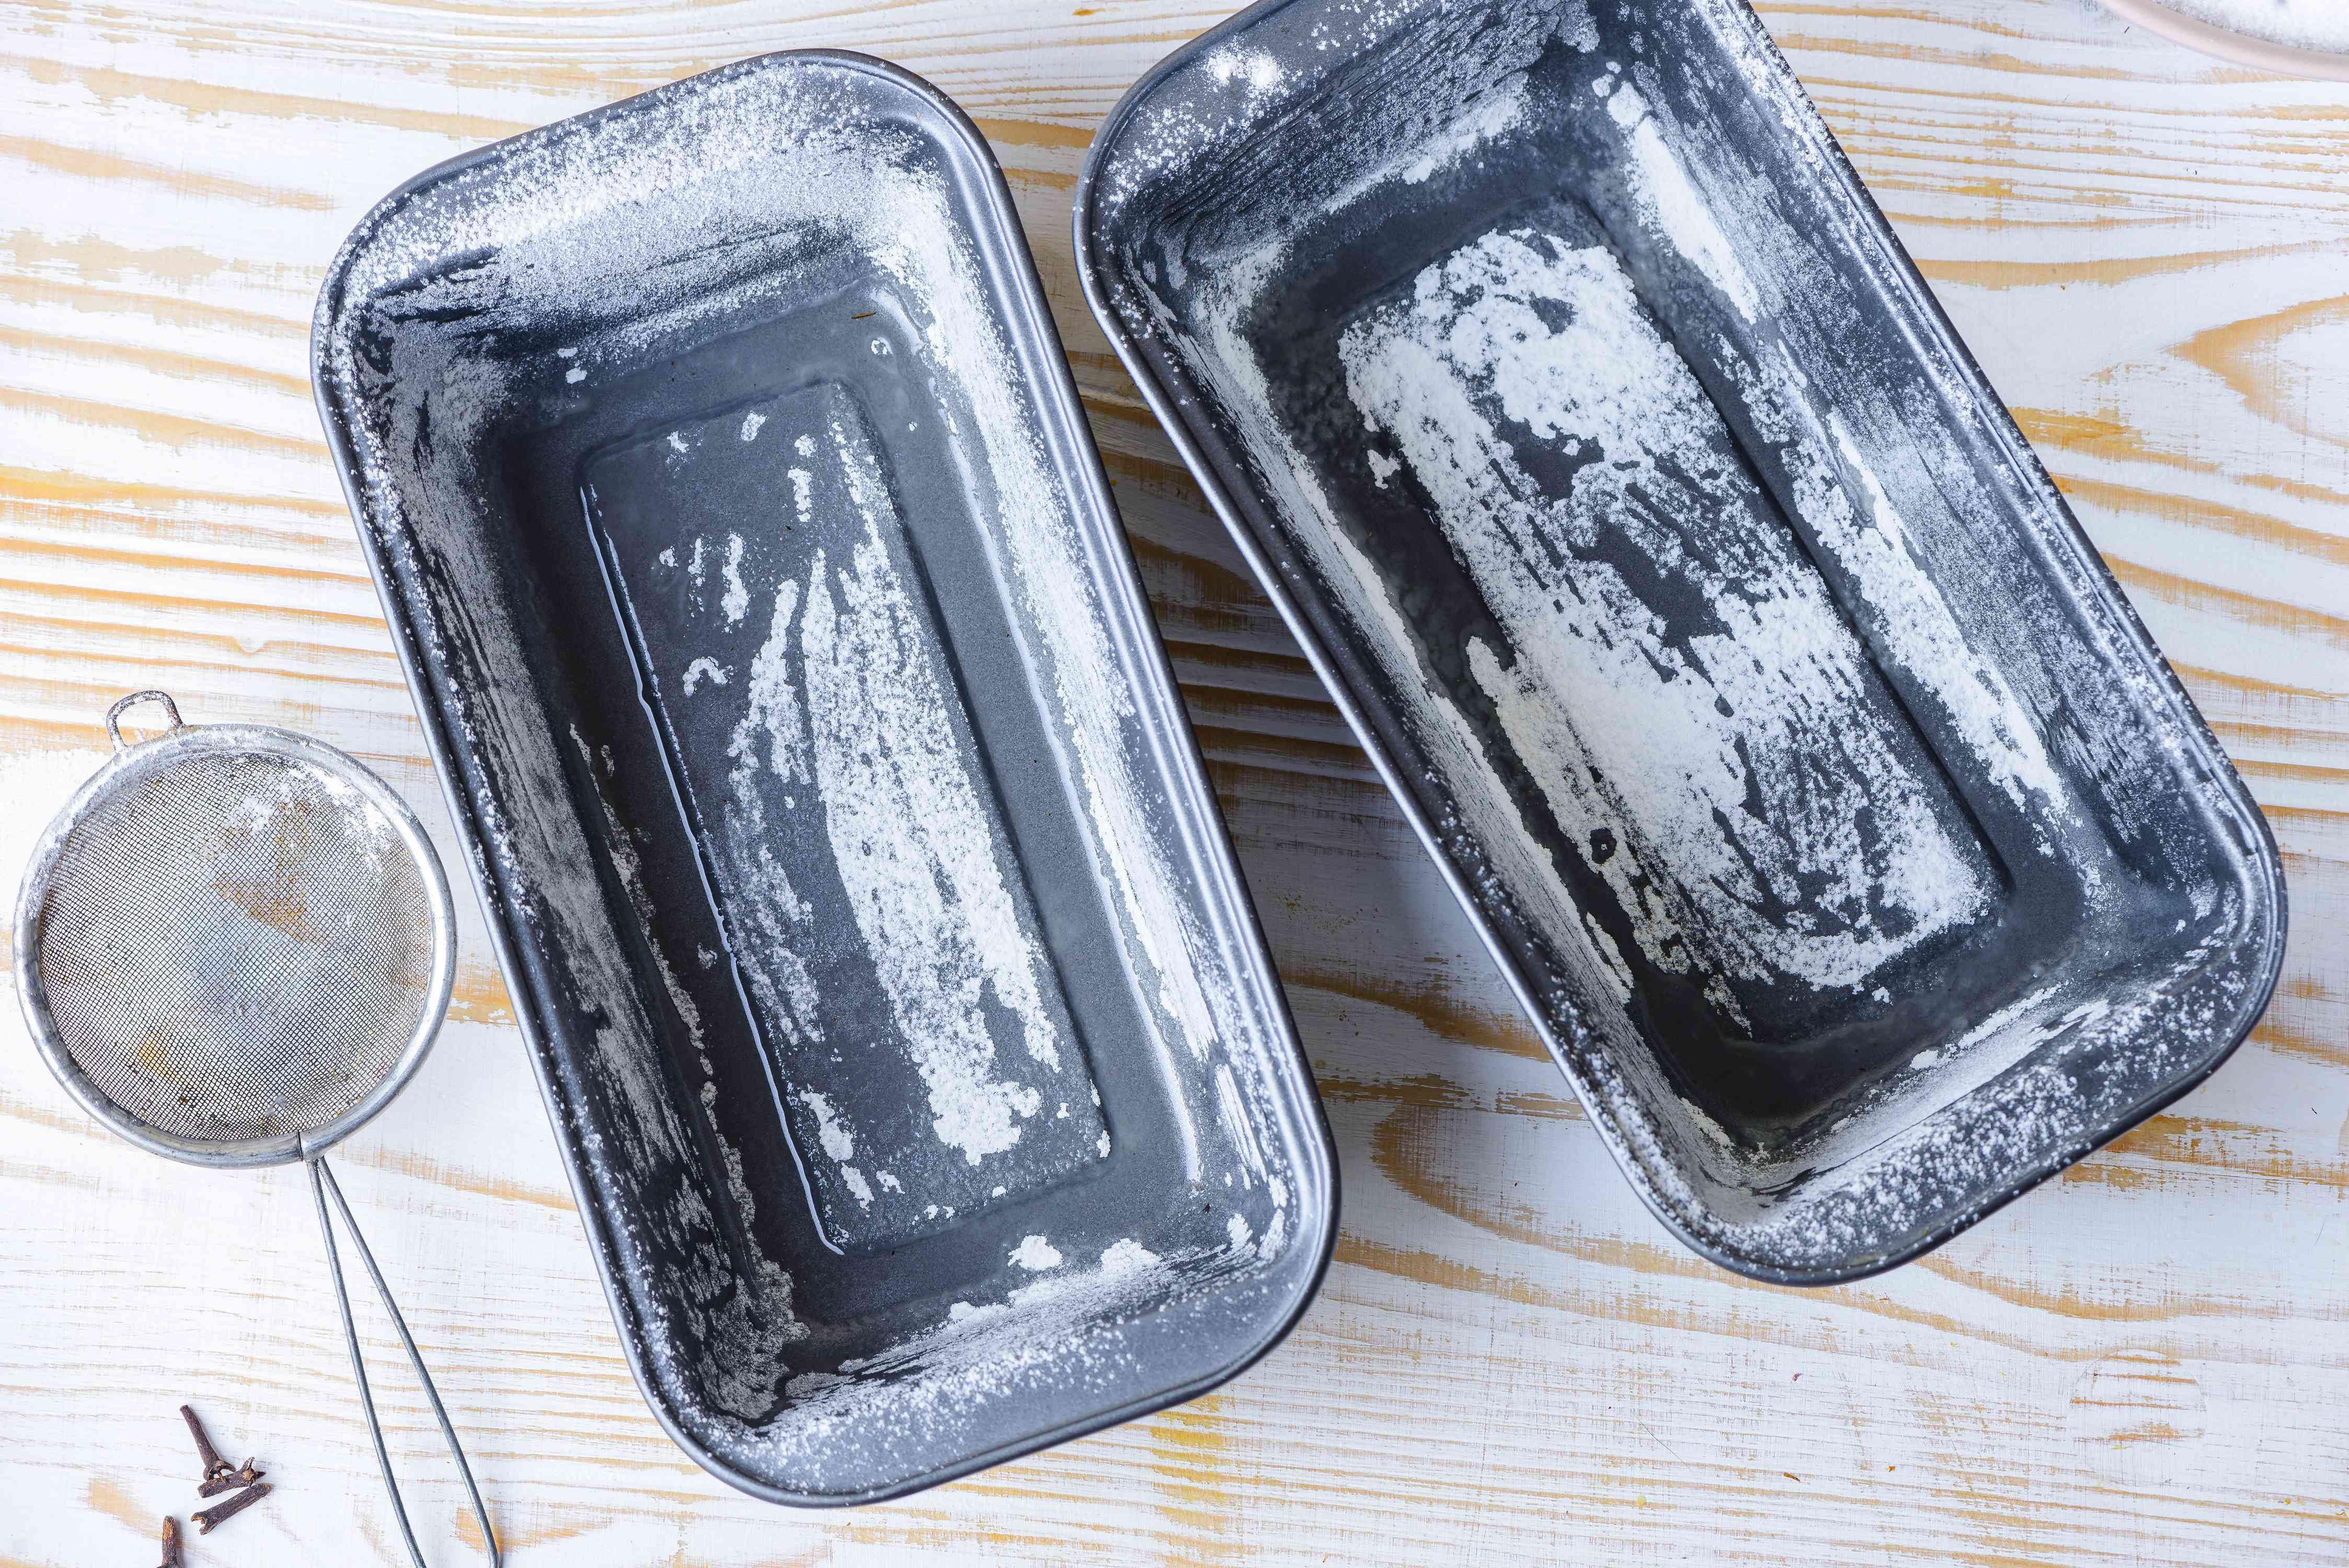 Grease pans